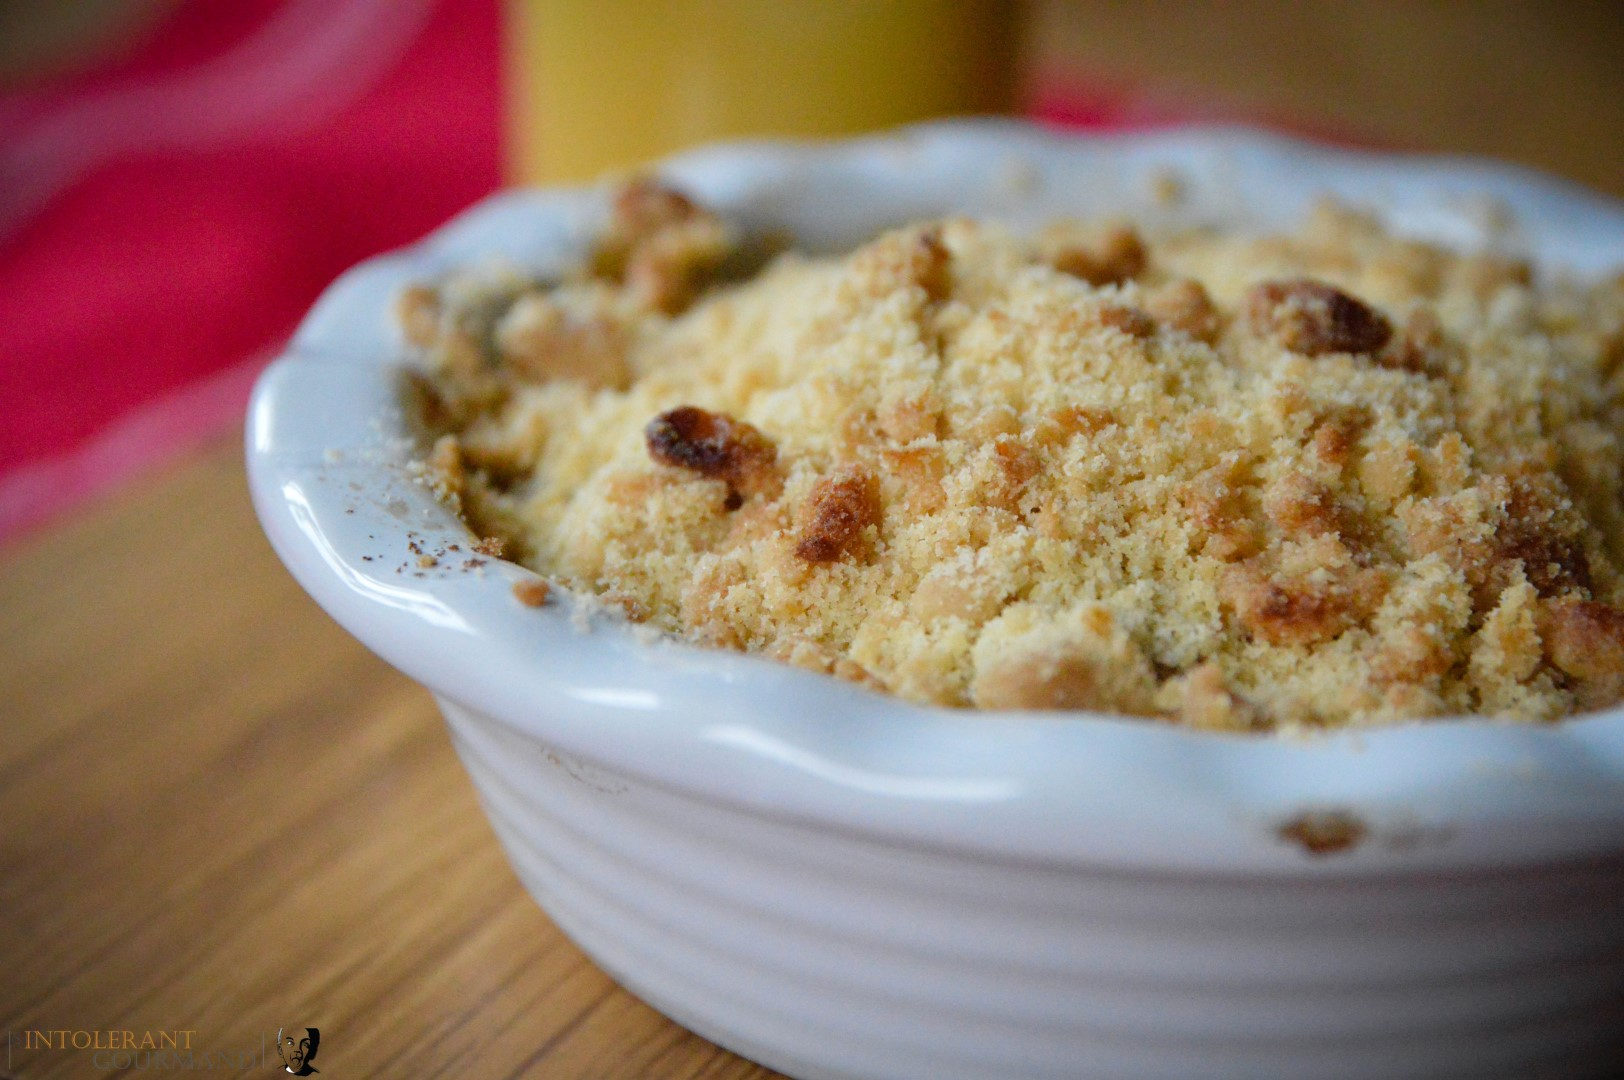 The best ever Gluten free & Dairy free Apple Crumble created for the Speciality Fine Food Fair! A delicious partnership of apple with a hint of mixed spice, covered with a shortbread inspired crumble topping! The perfect comfort food, especially when paired with dairy-free custard or cream! www.intolerantgourmand.com